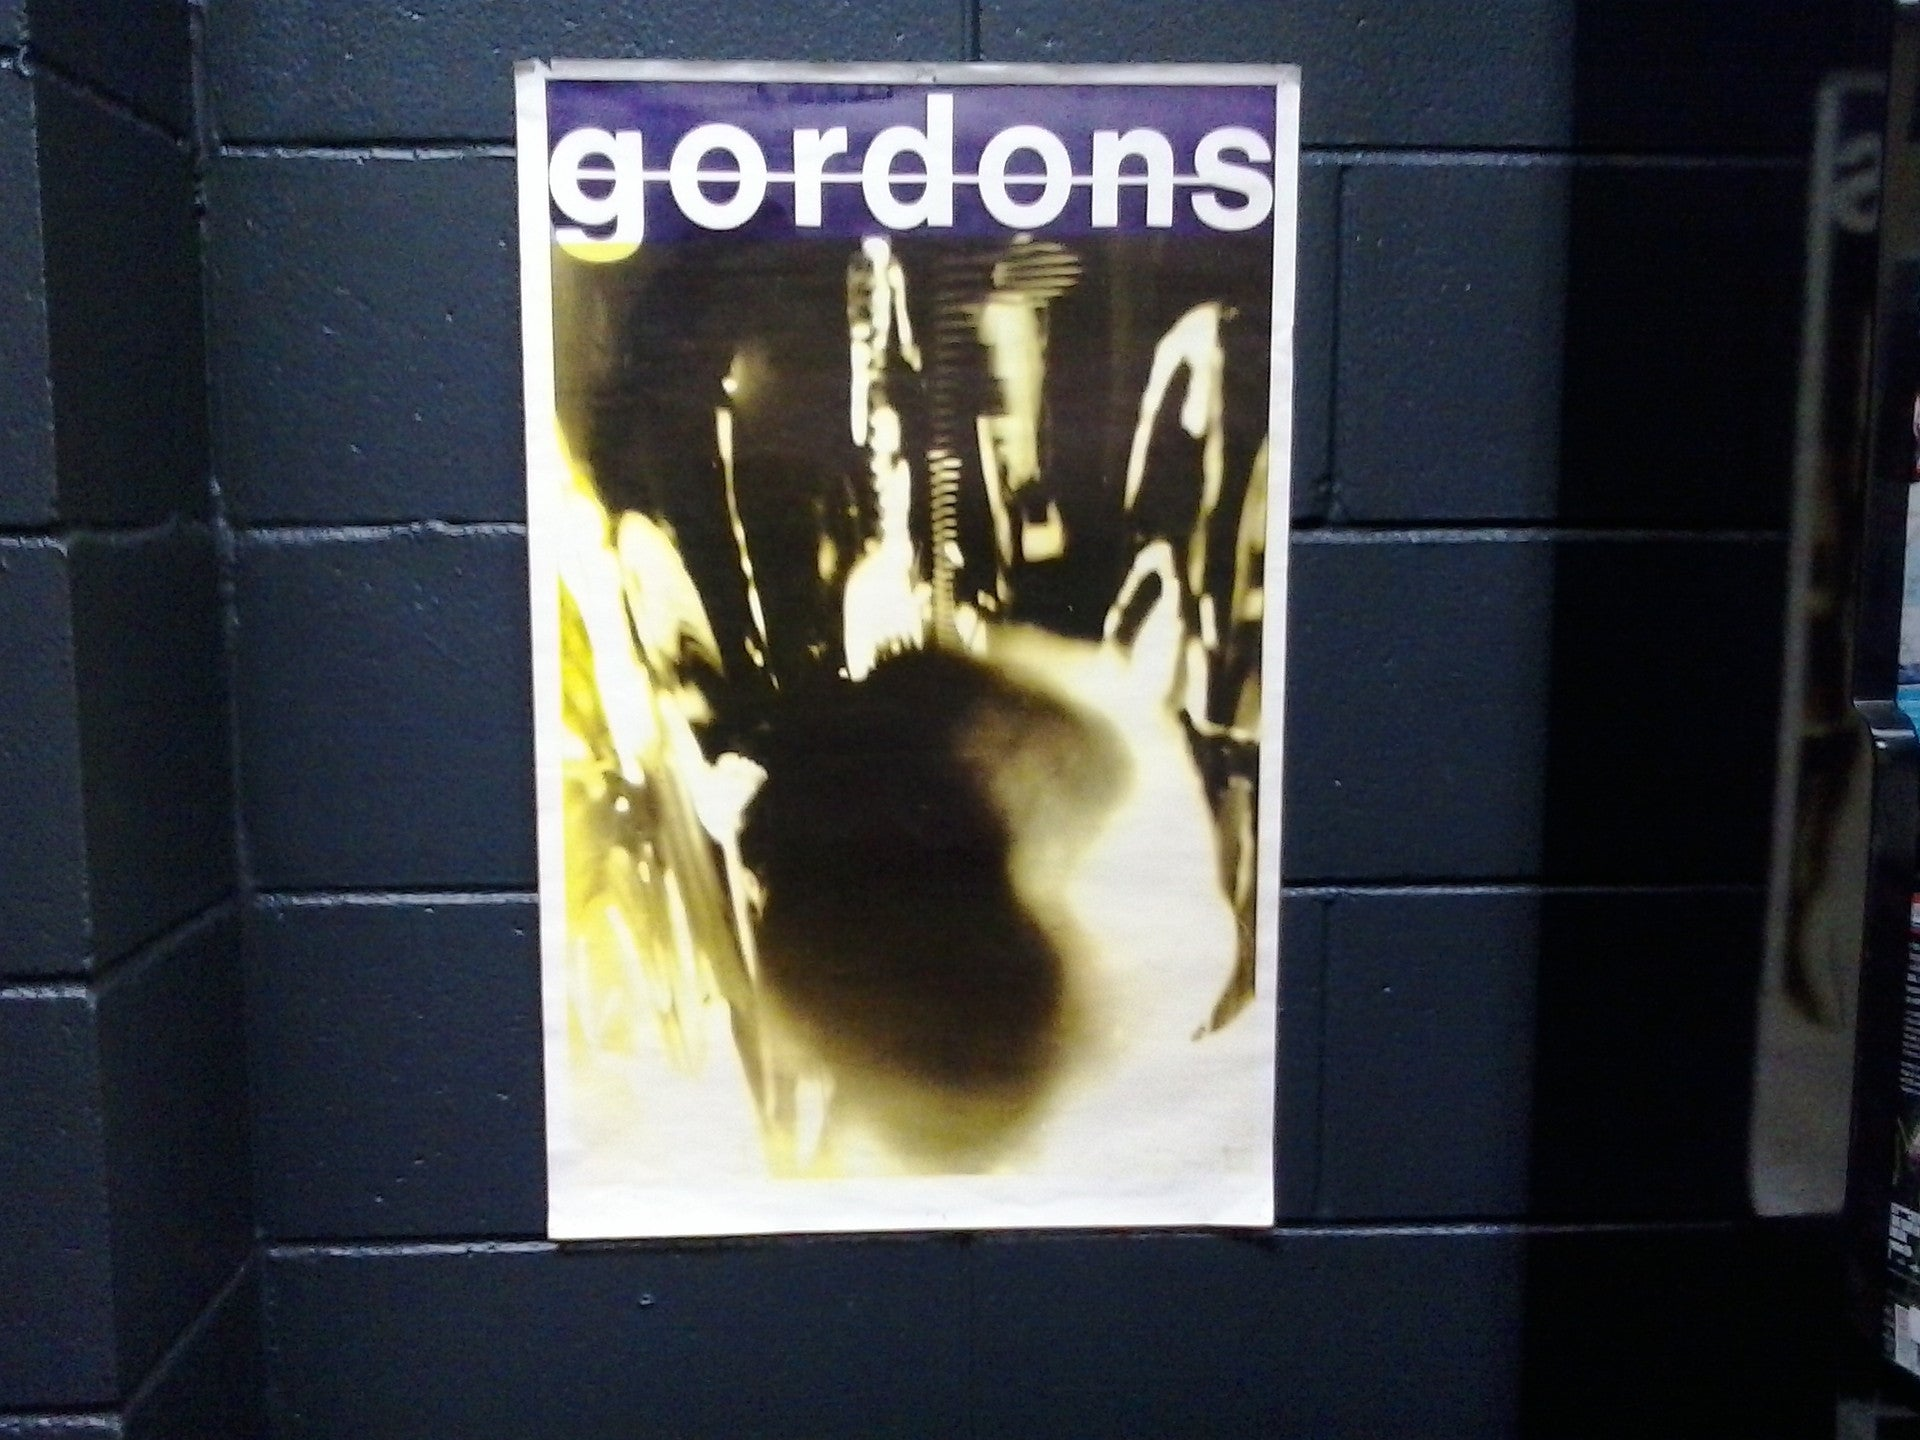 GORDONS THE-ORIGINAL GIG POSTER